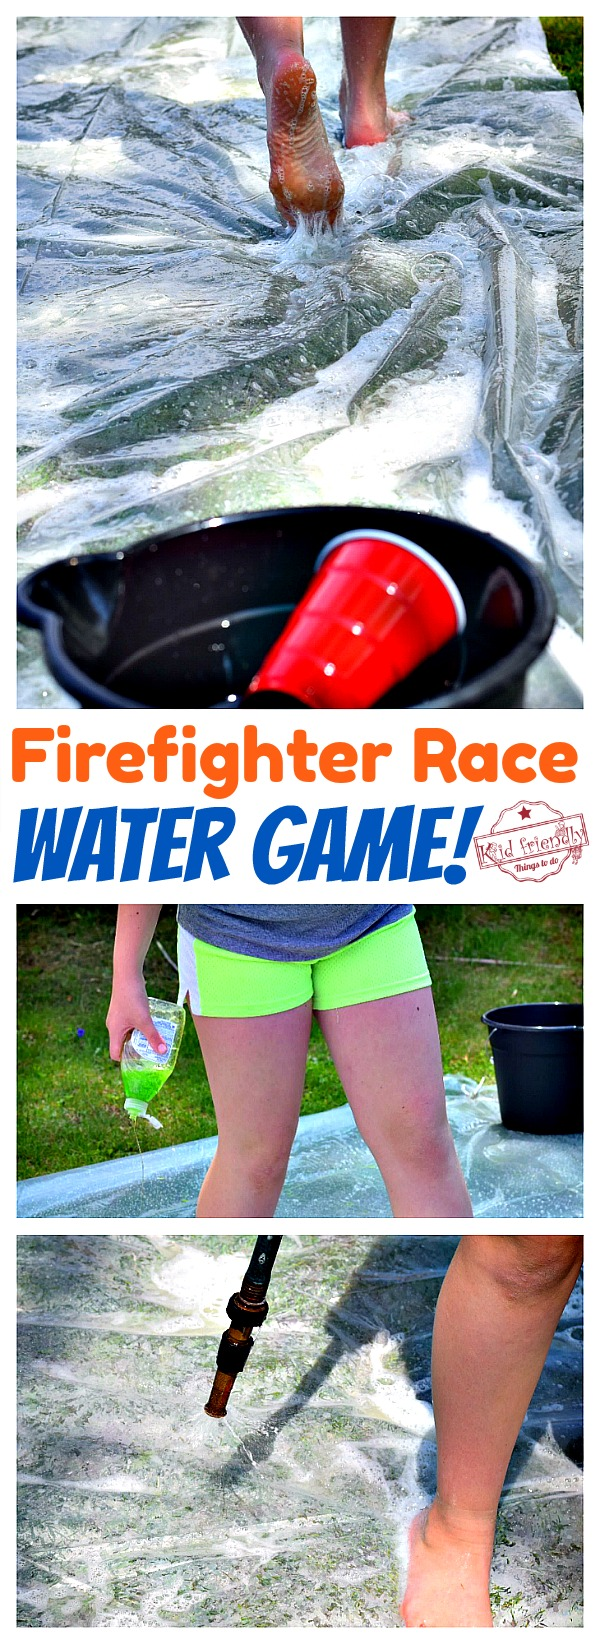 Setting up a fun water game for kids and teens